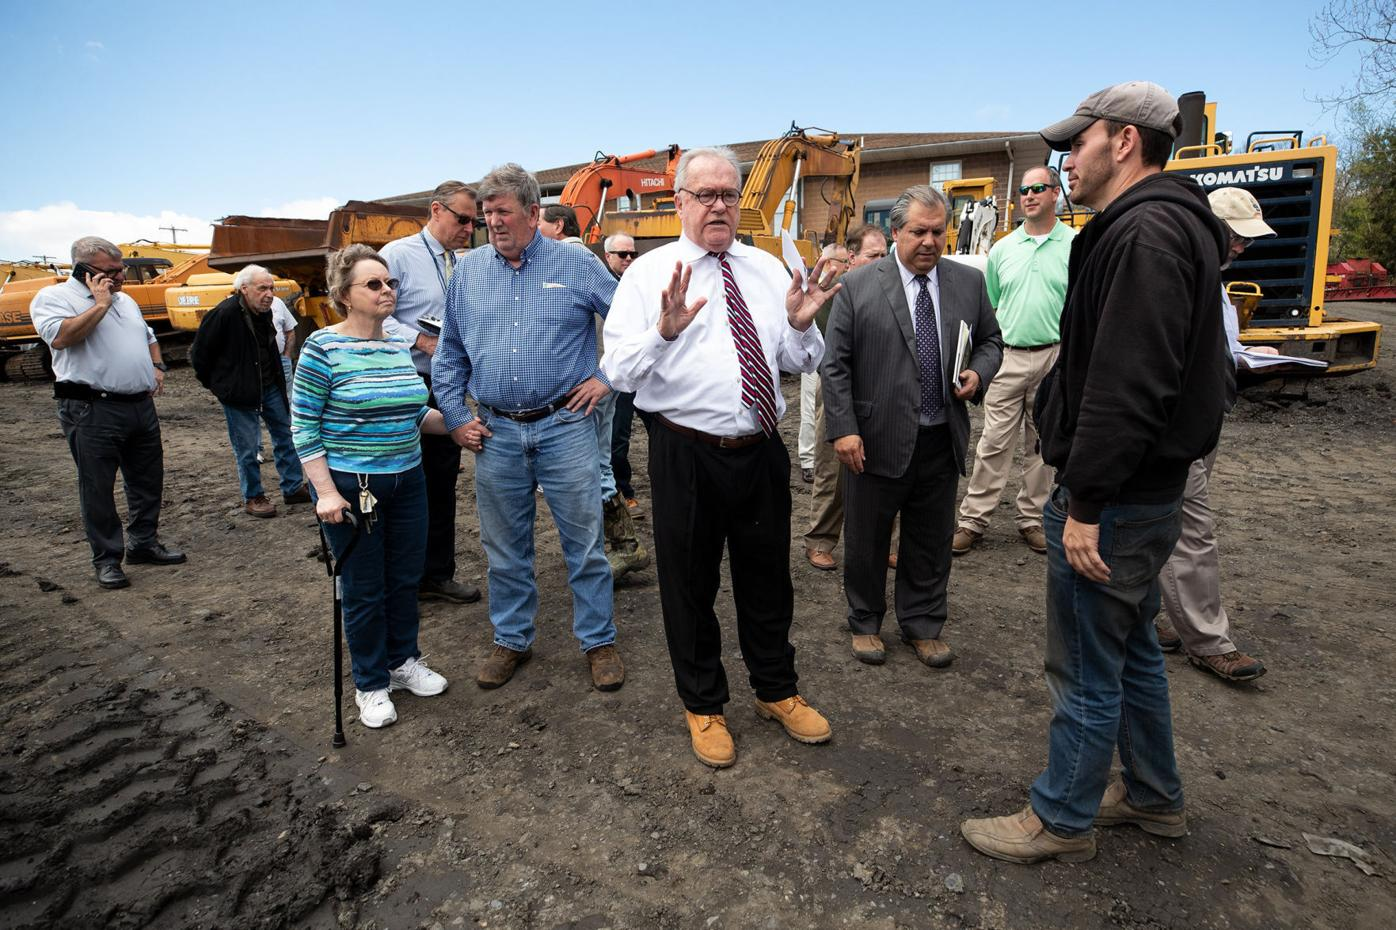 Old Forge seeks new order, more than $530,000 in fines and costs against Stocki